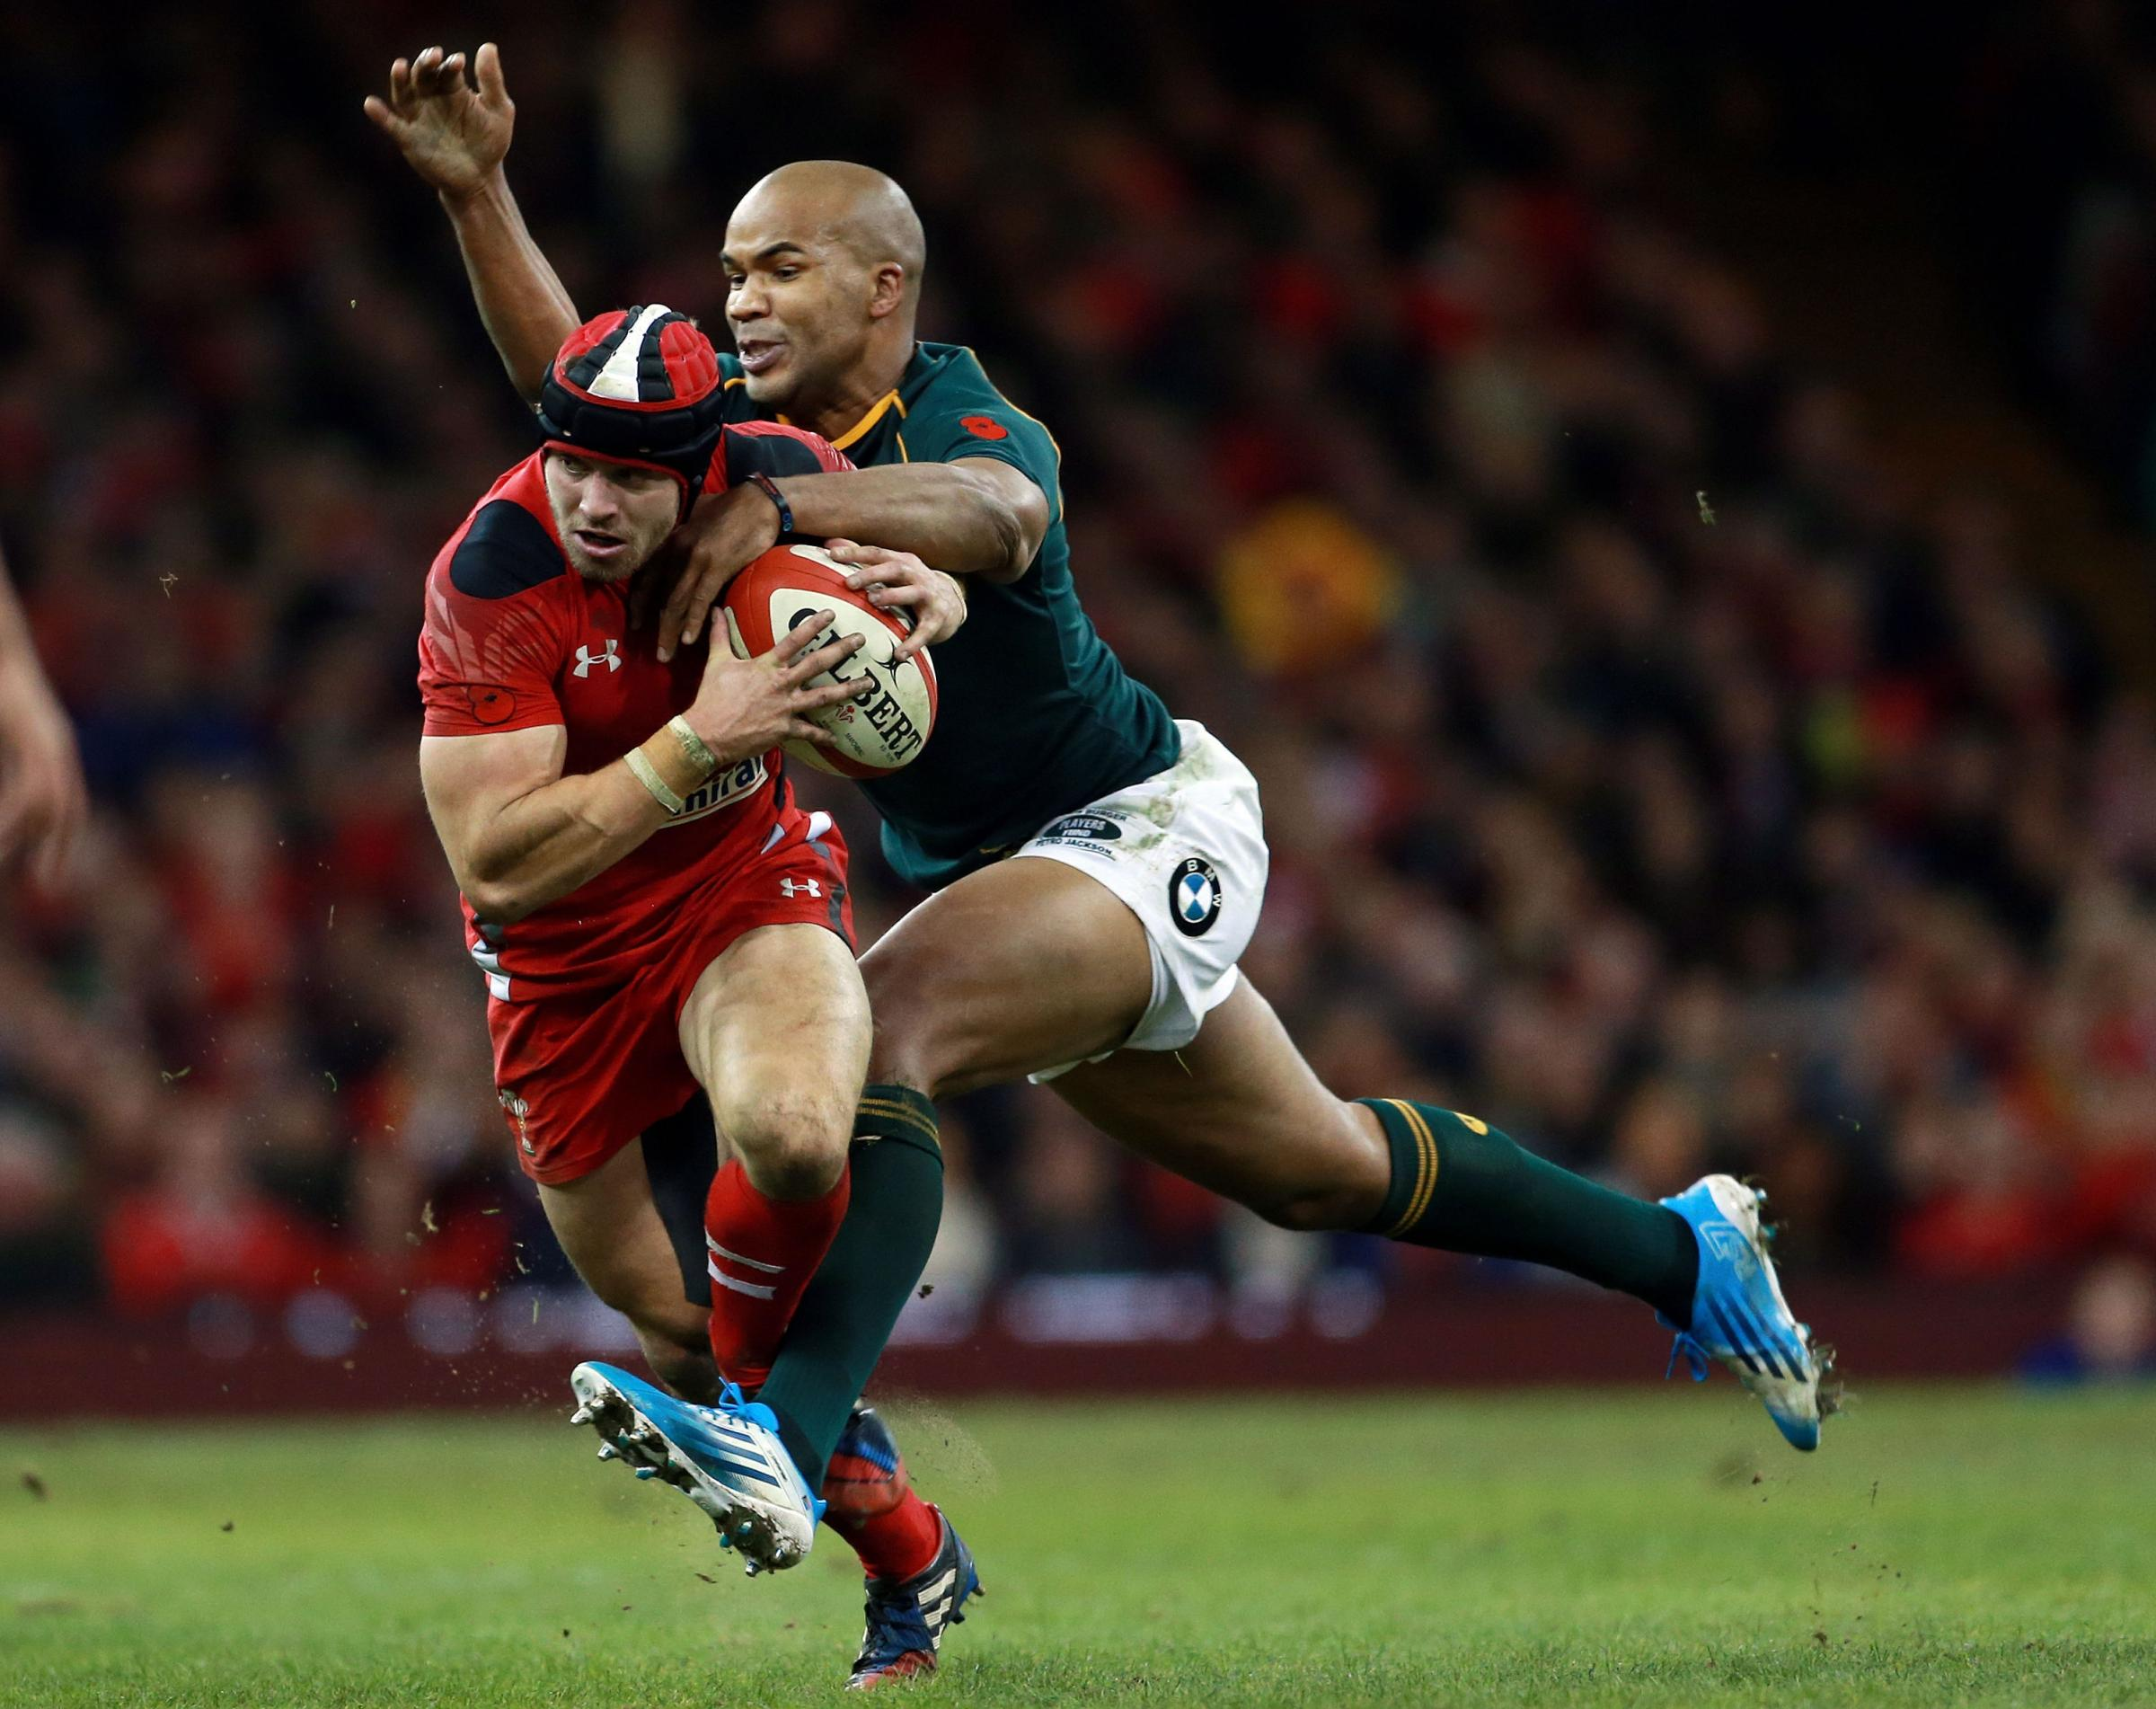 ON THE MOVE: JP Pietersen played on the wing for South Africa against Wales last autumn but will be in midfield this weekend